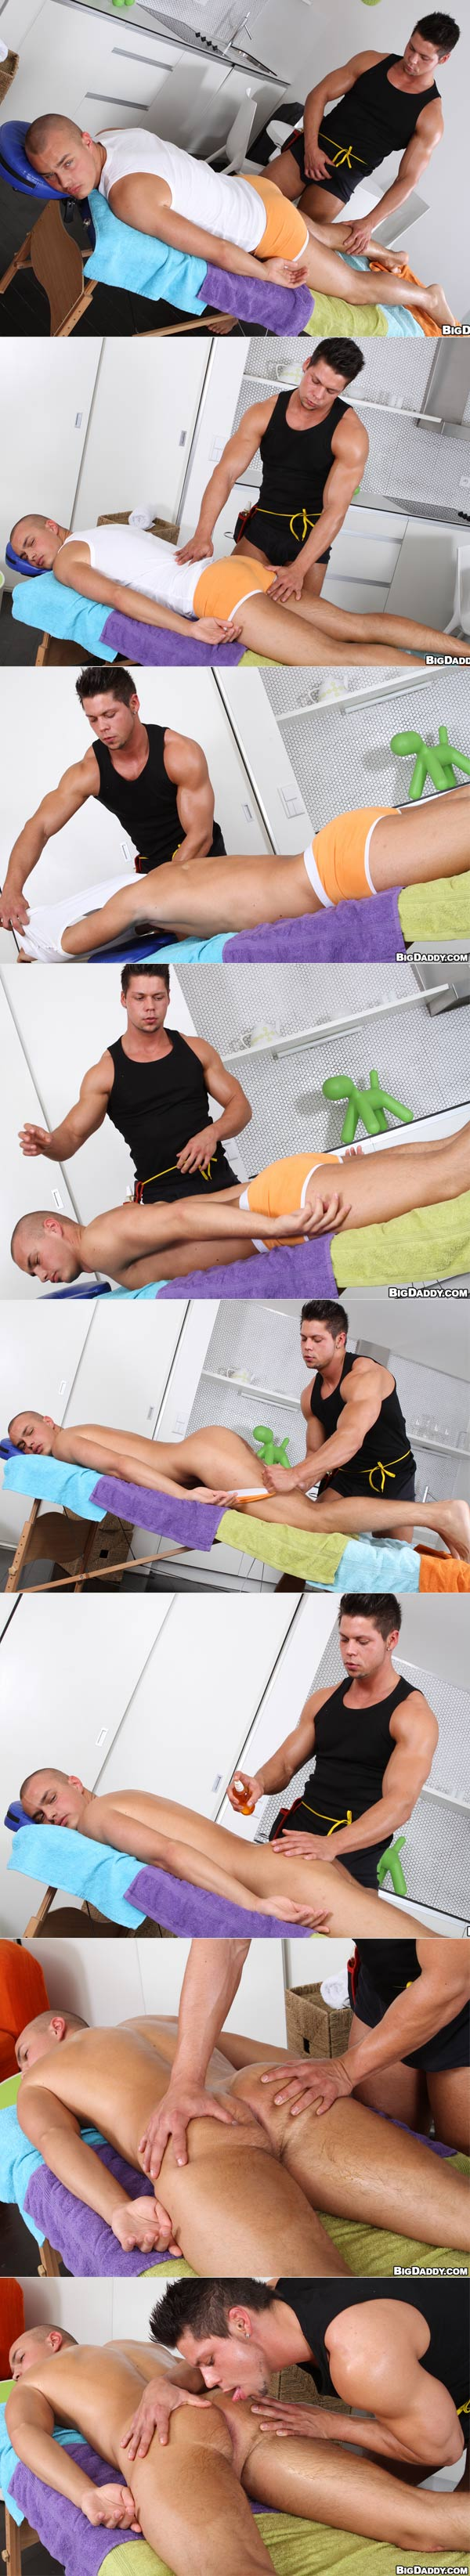 Muscles Feel Good On A Man's Ass at RubHim.com